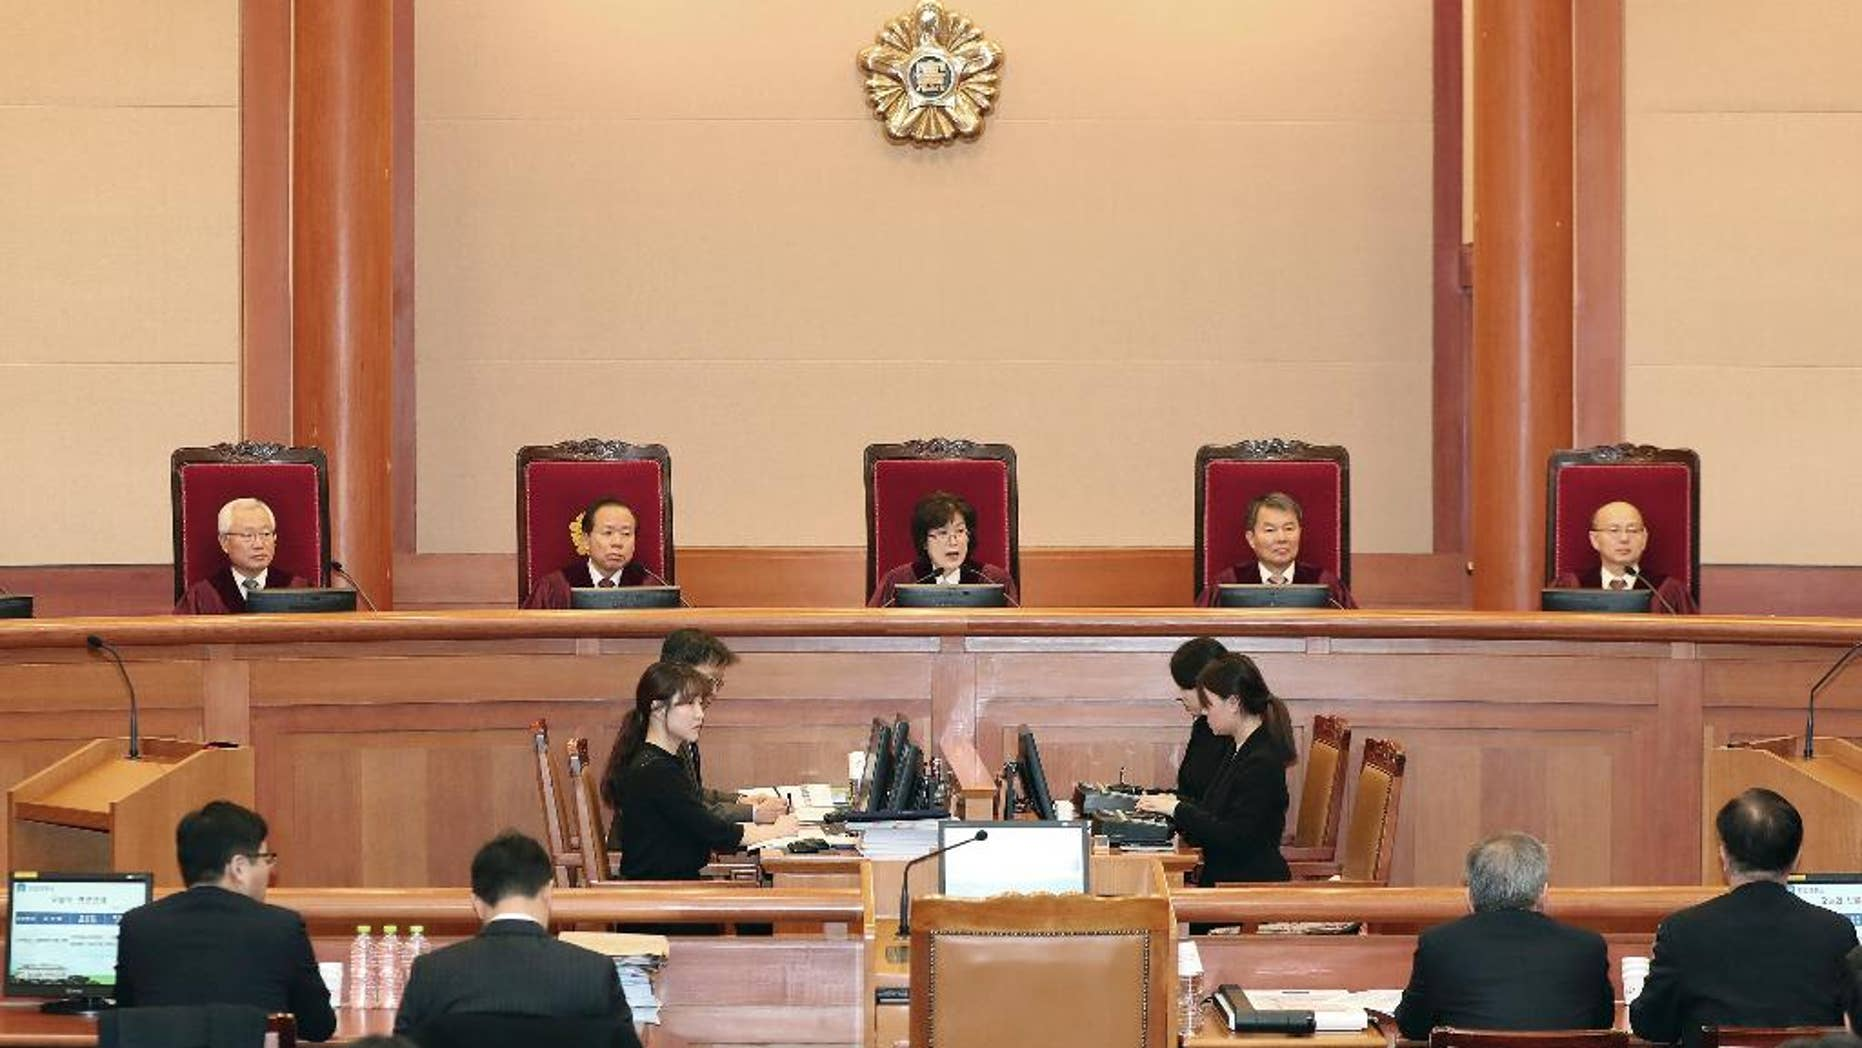 Judges of the Constitutional Court sit during a hearing on whether to confirm the impeachment of President Park Geun-hye, at the Court in Seoul, South Korea, Thursday, Feb. 9, 2017. Prosecutors say South Korea's impeached president has canceled plans to undergo questioning to protest leaks to the media about her investigation. (Kim Hyun-tae/Yonhap via AP)